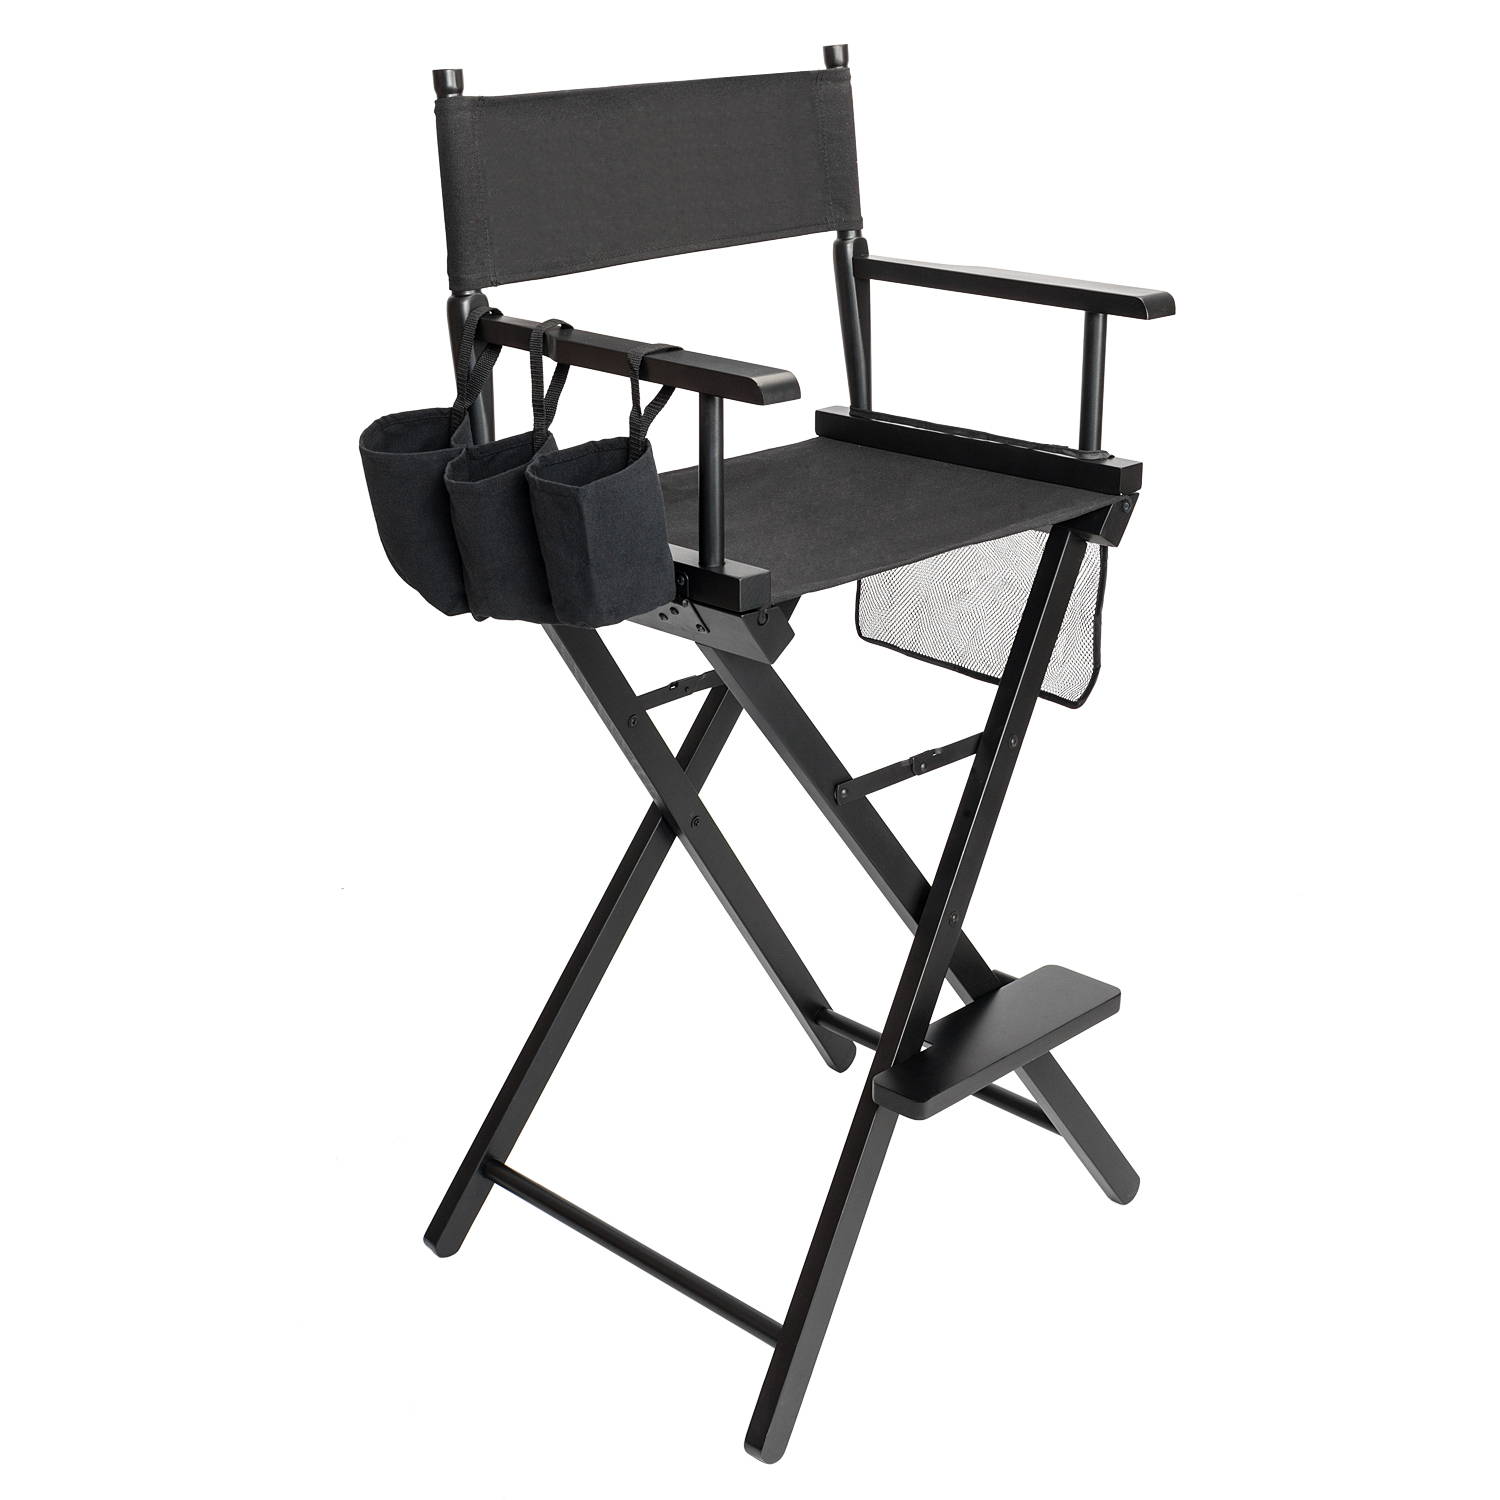 Black Directors Chair Details About Makeup Artist Director S Chair Aluminum Frame Light Weight And Folding Black